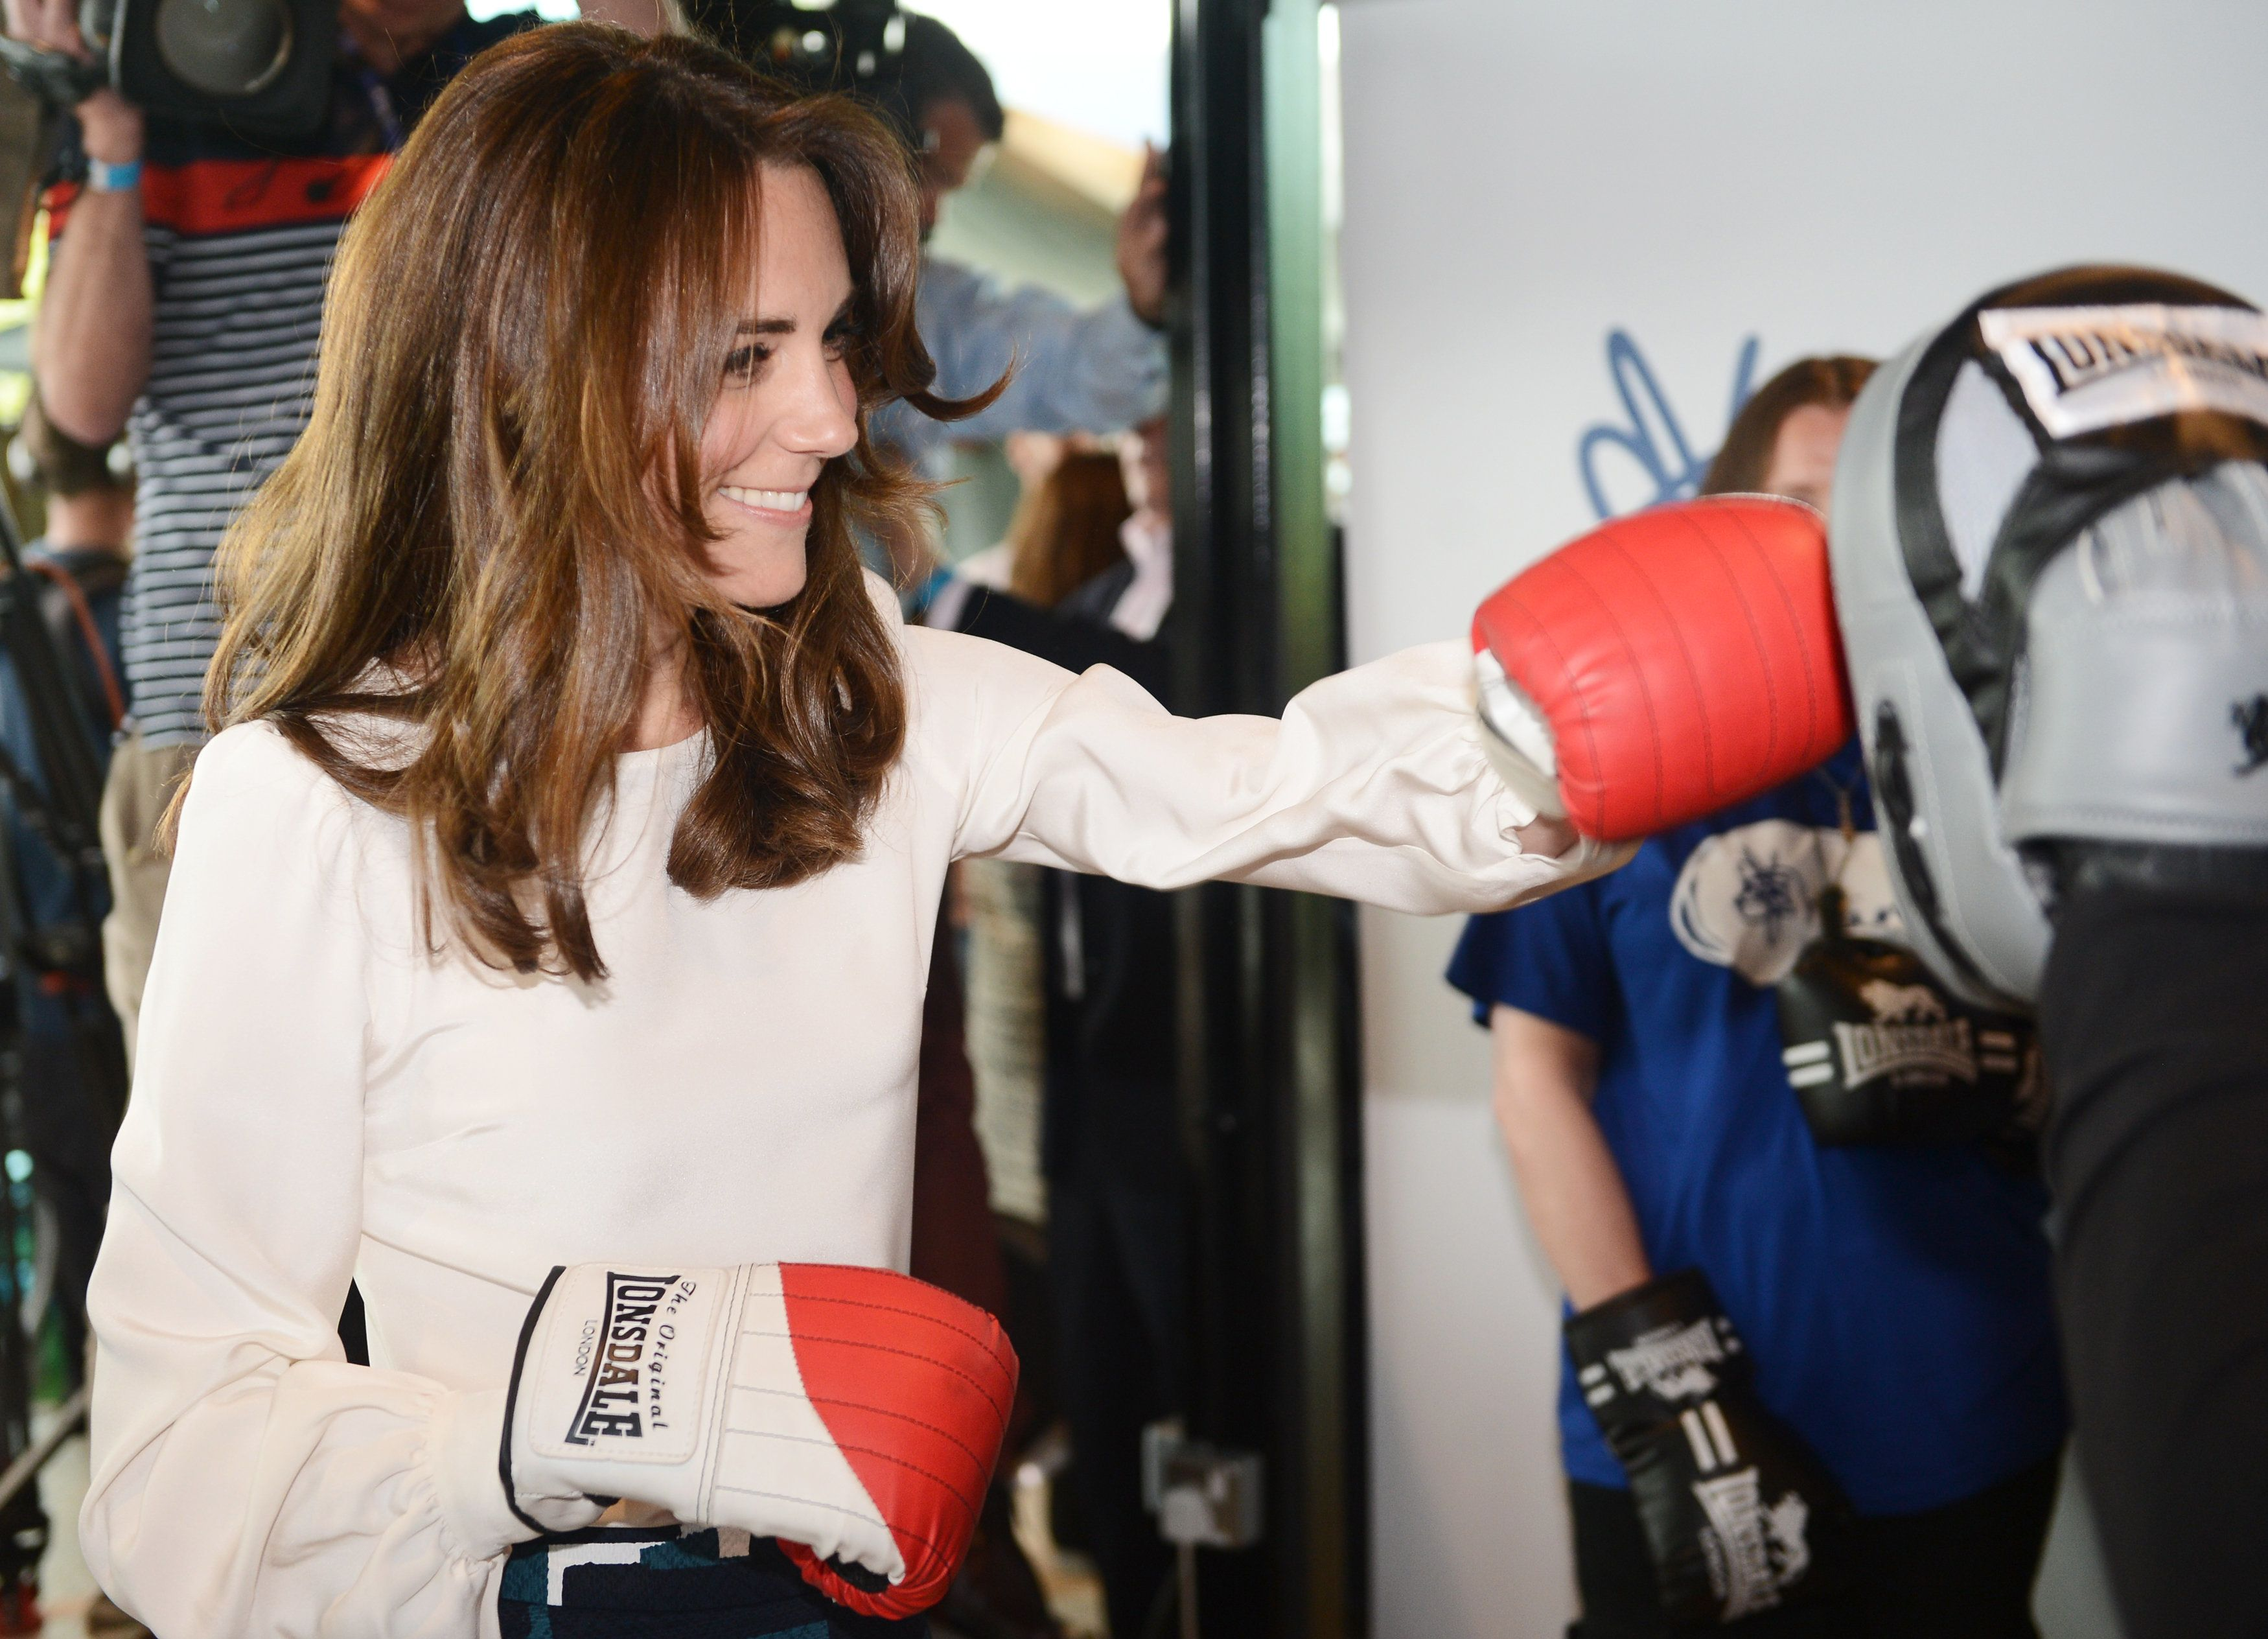 'Heads Together': Duchess Of Cambridge Packs A Punch To End Mental Health